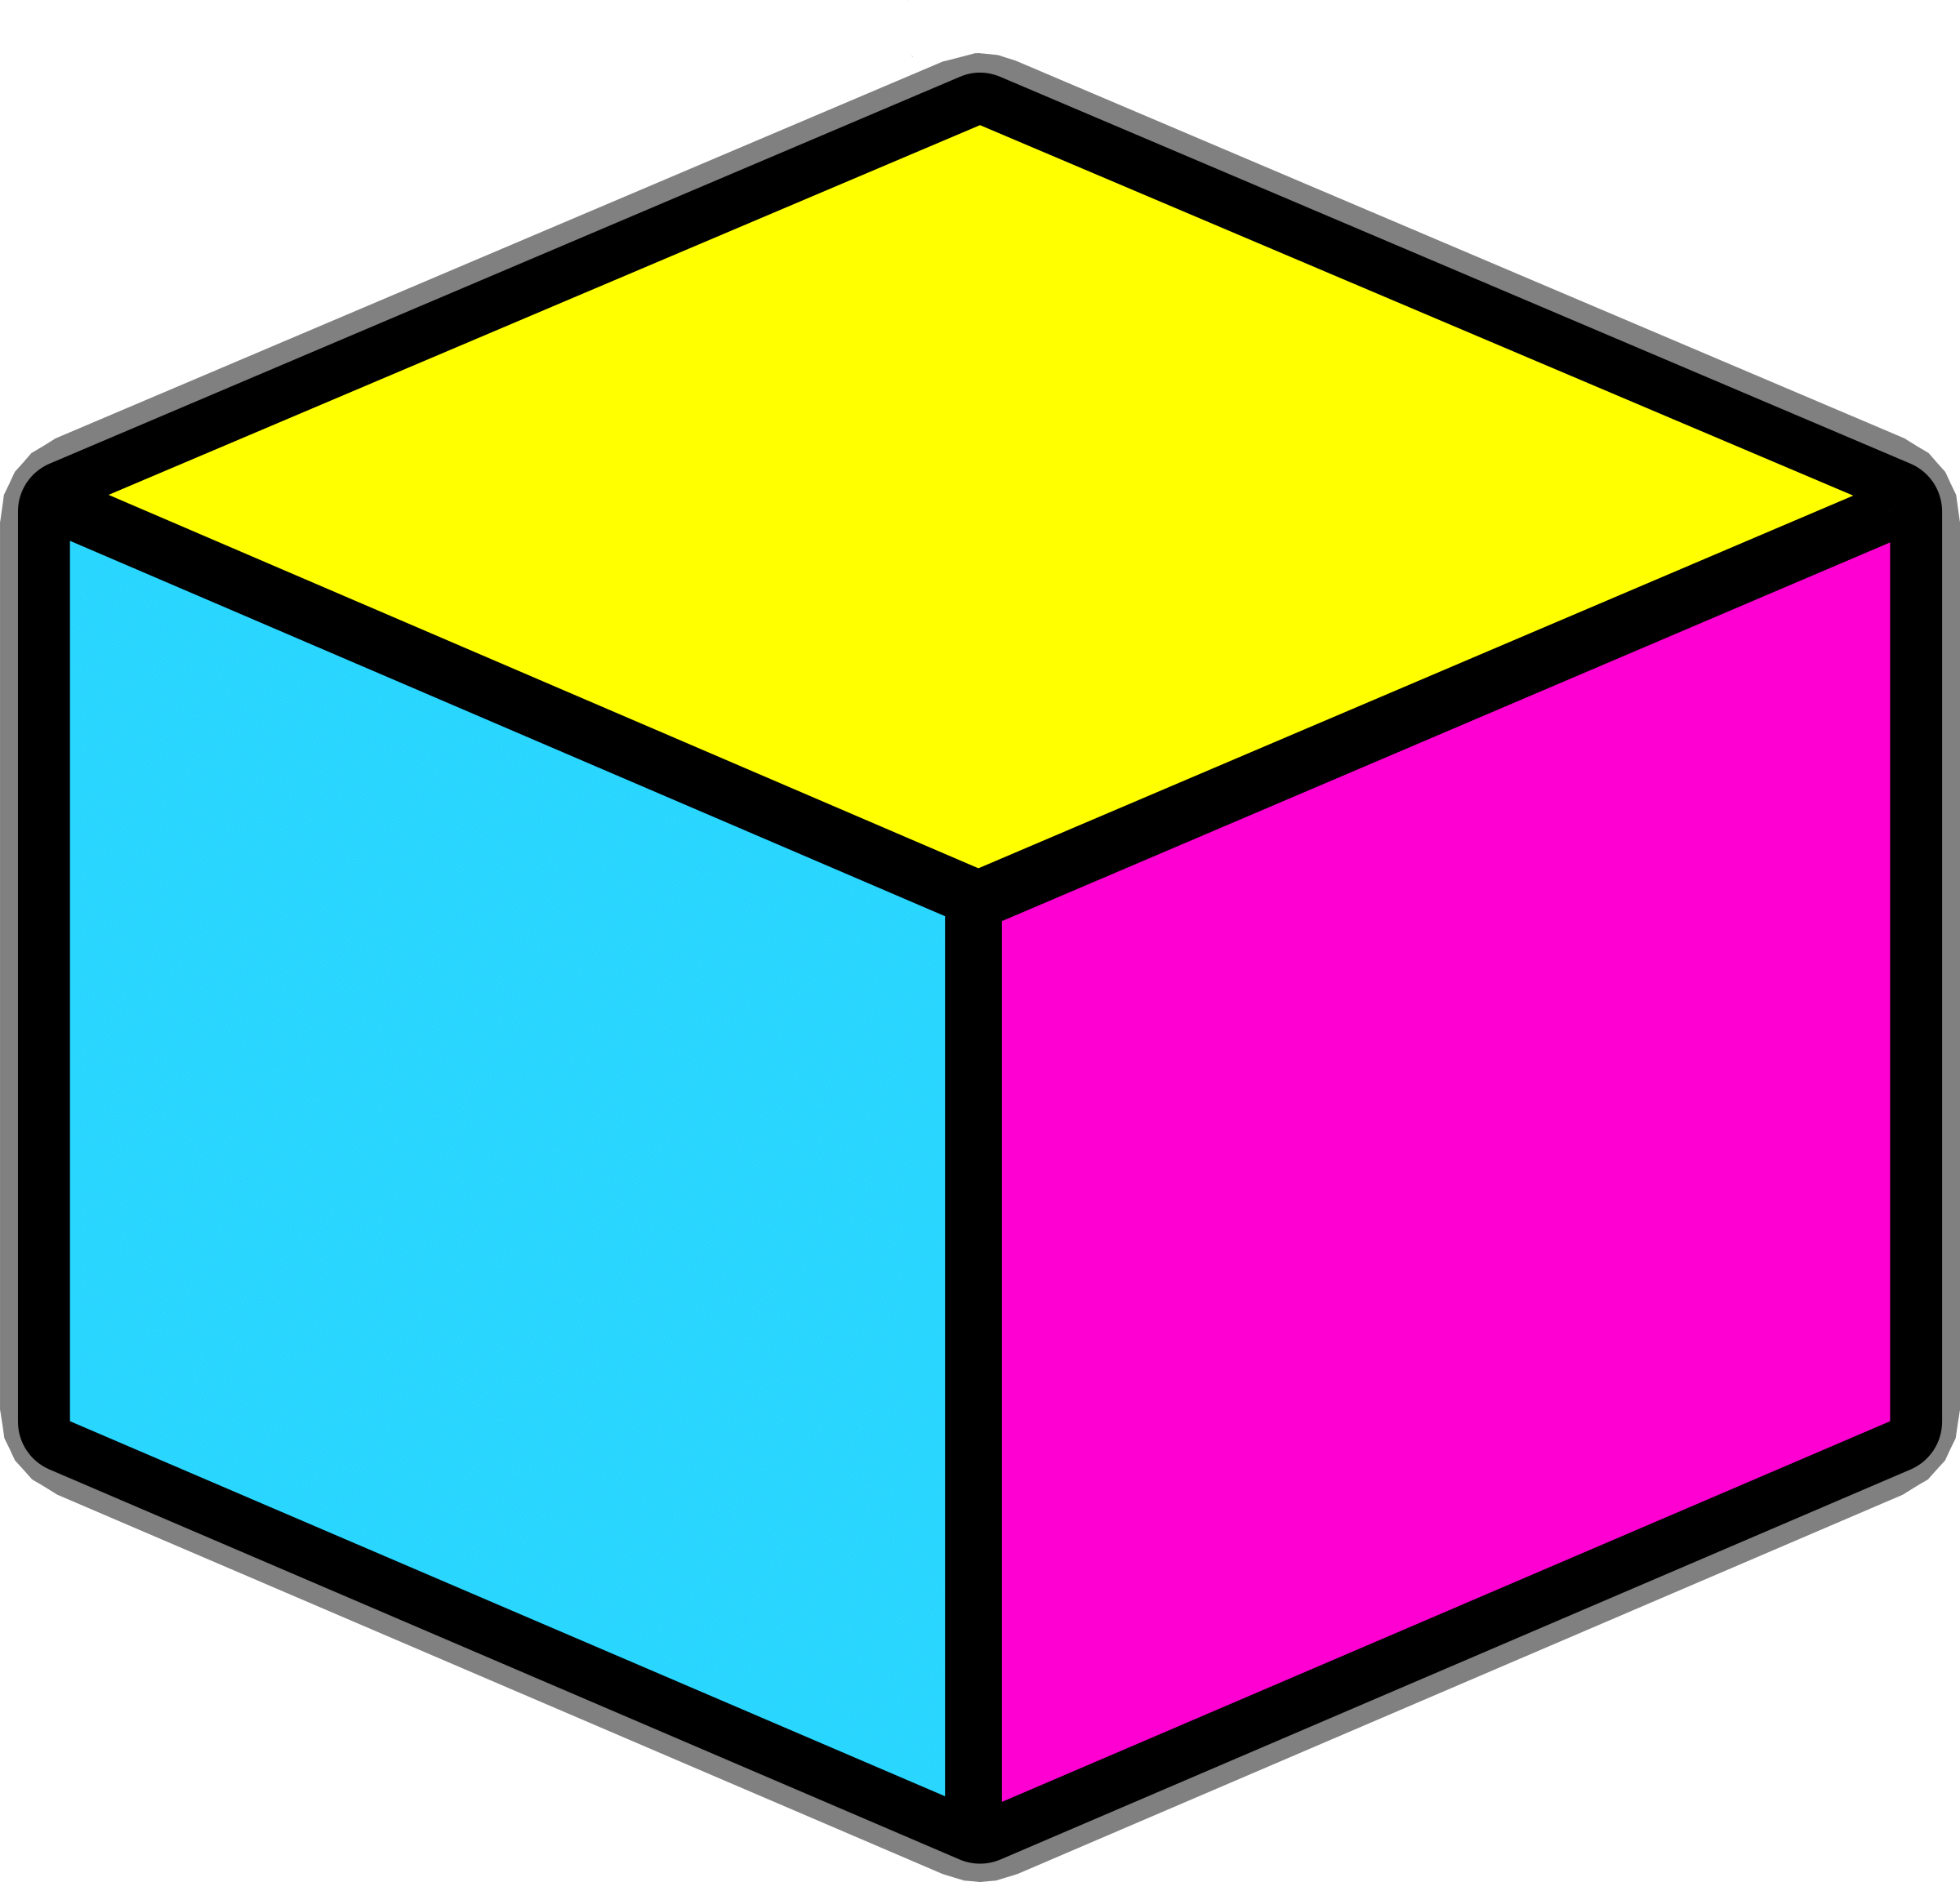 Cube cliparts all images. Crayon clipart shape